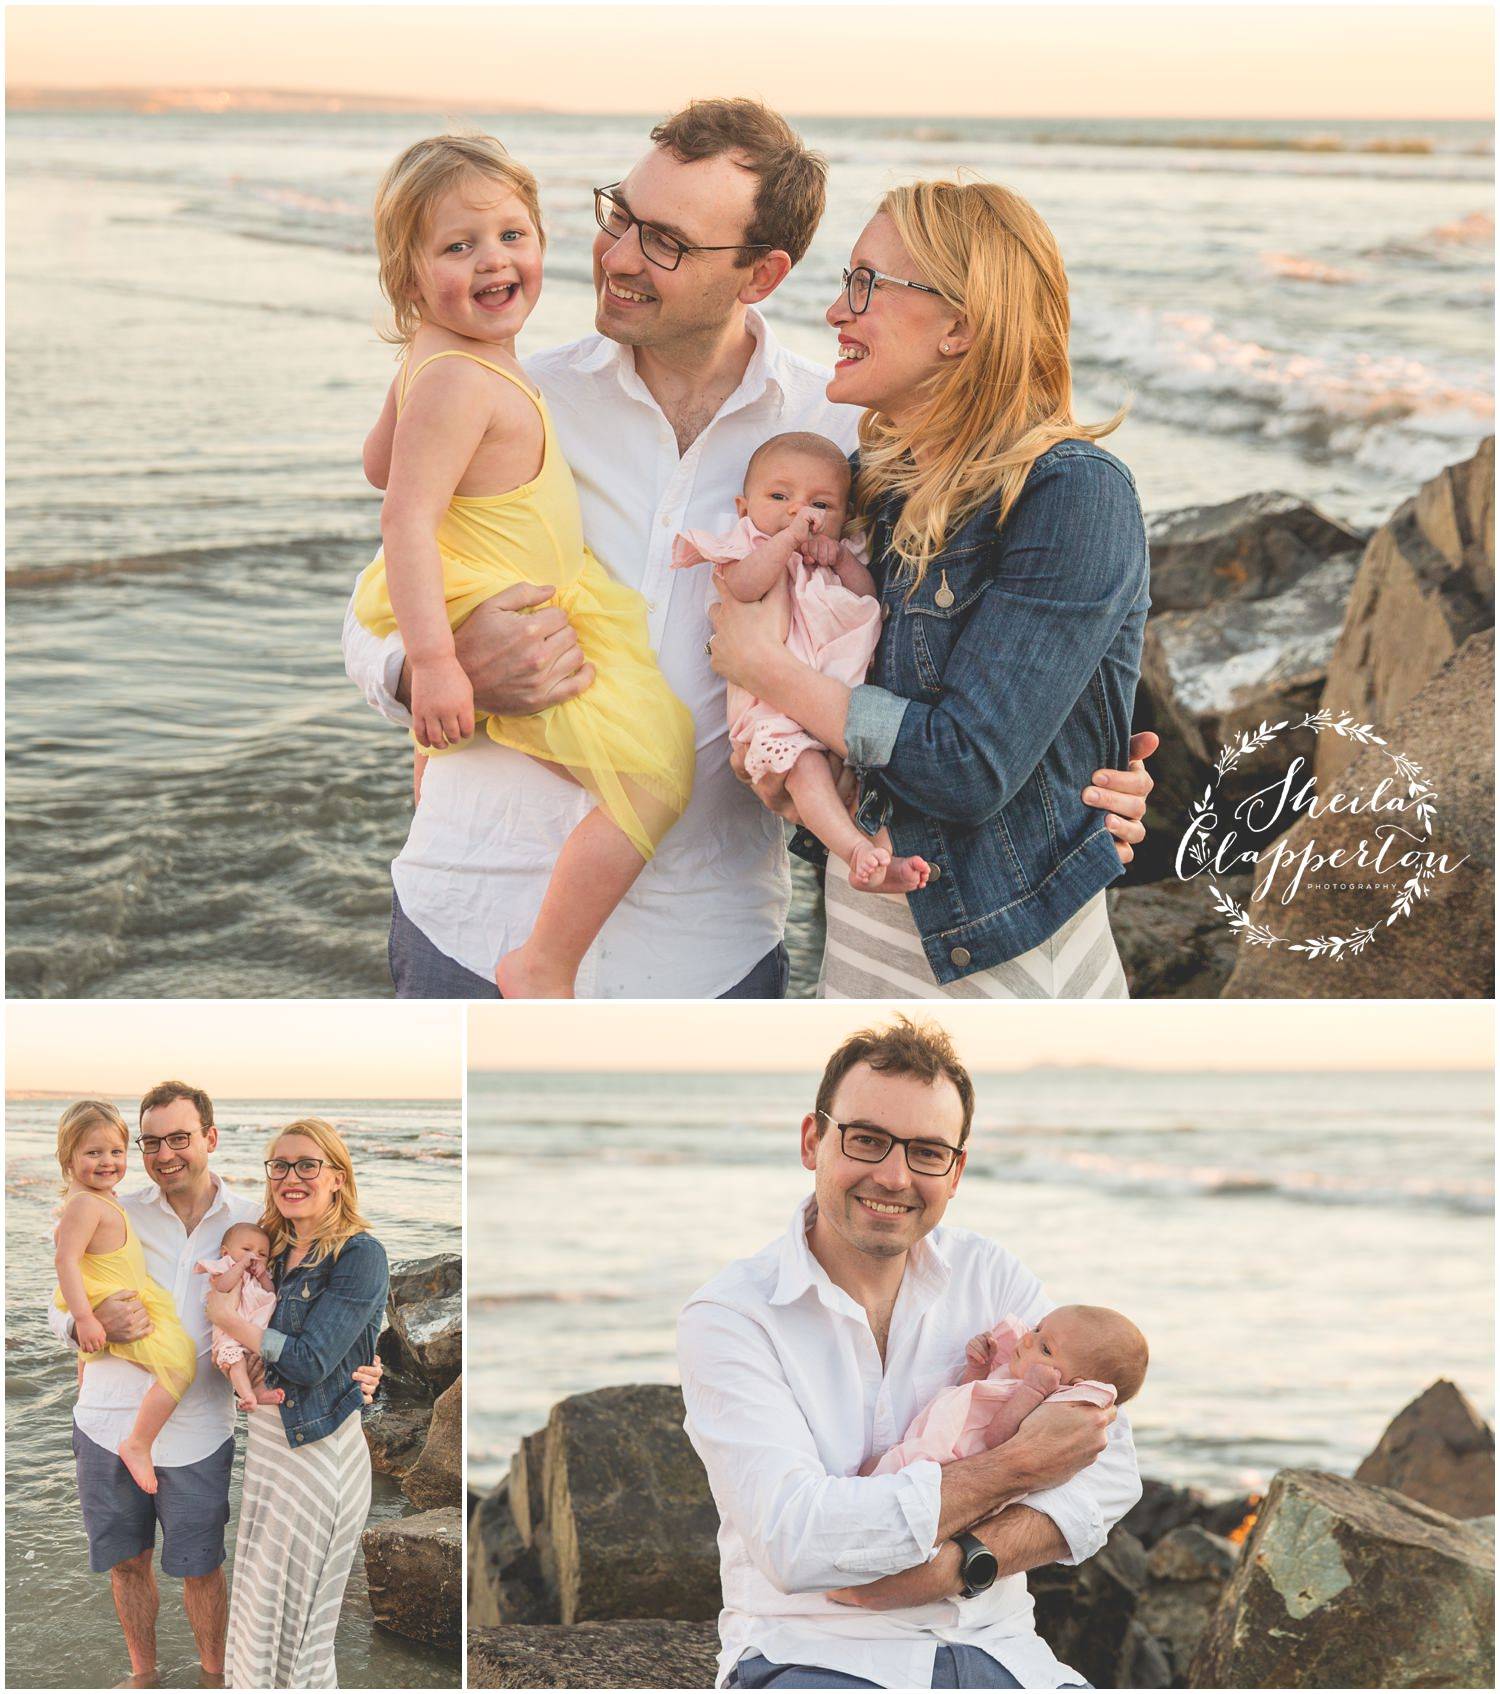 coronado beach portraits